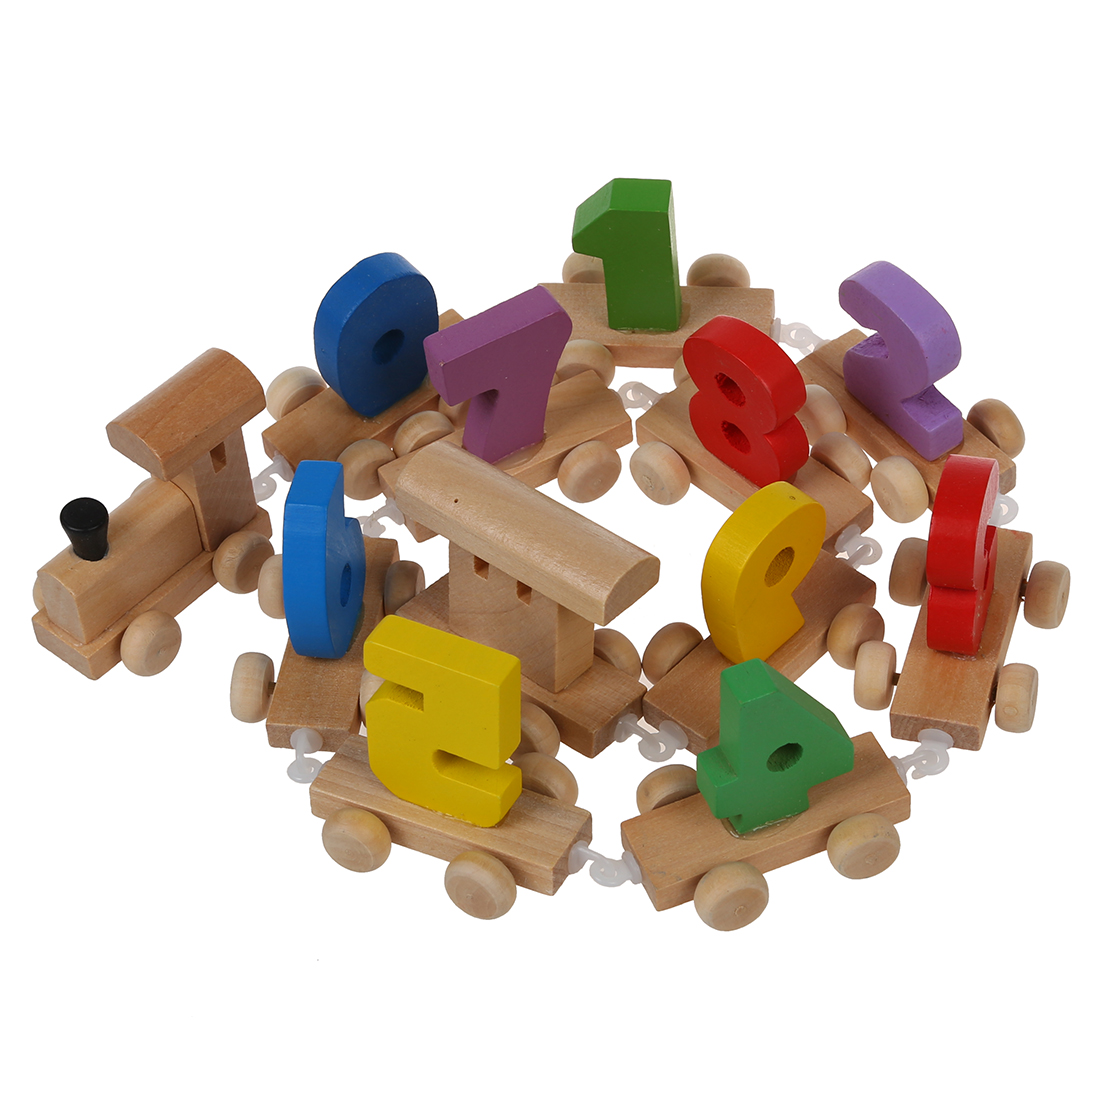 Digital Number Wooden Train Figures Railway Kids Wood Mini Toy Educational